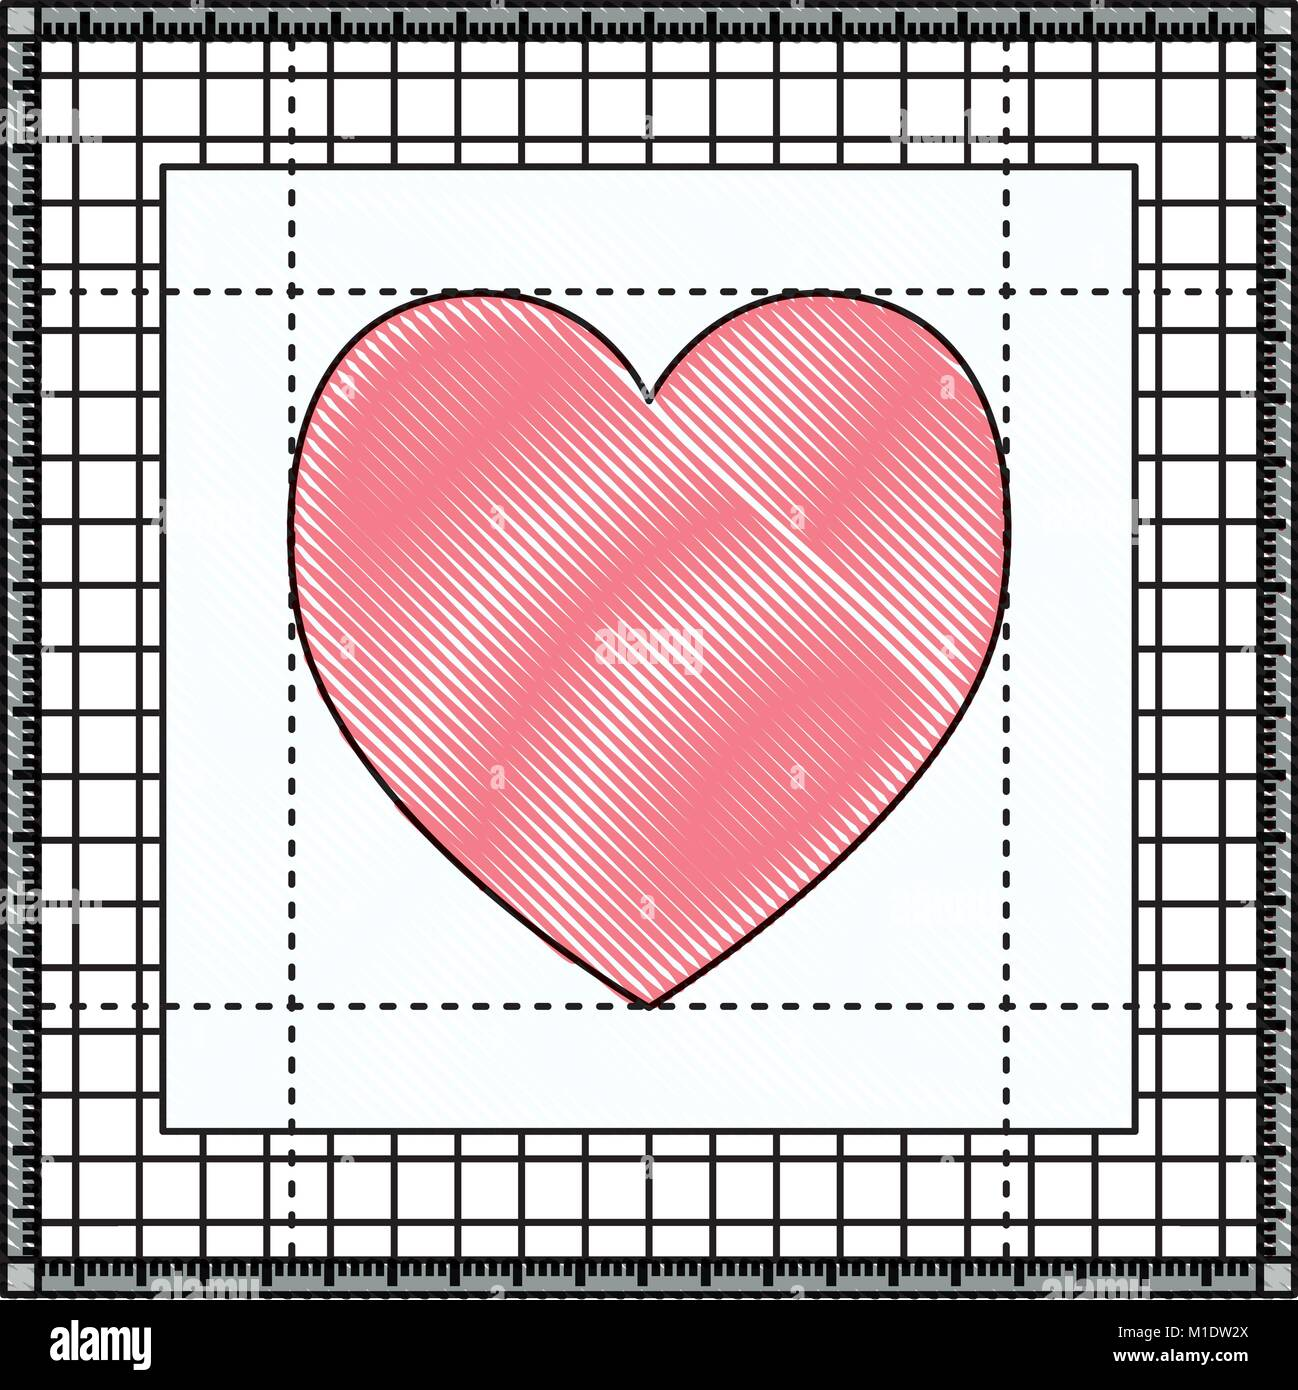 heart in screen workspace graphic design in colored crayon silhouette - Stock Image